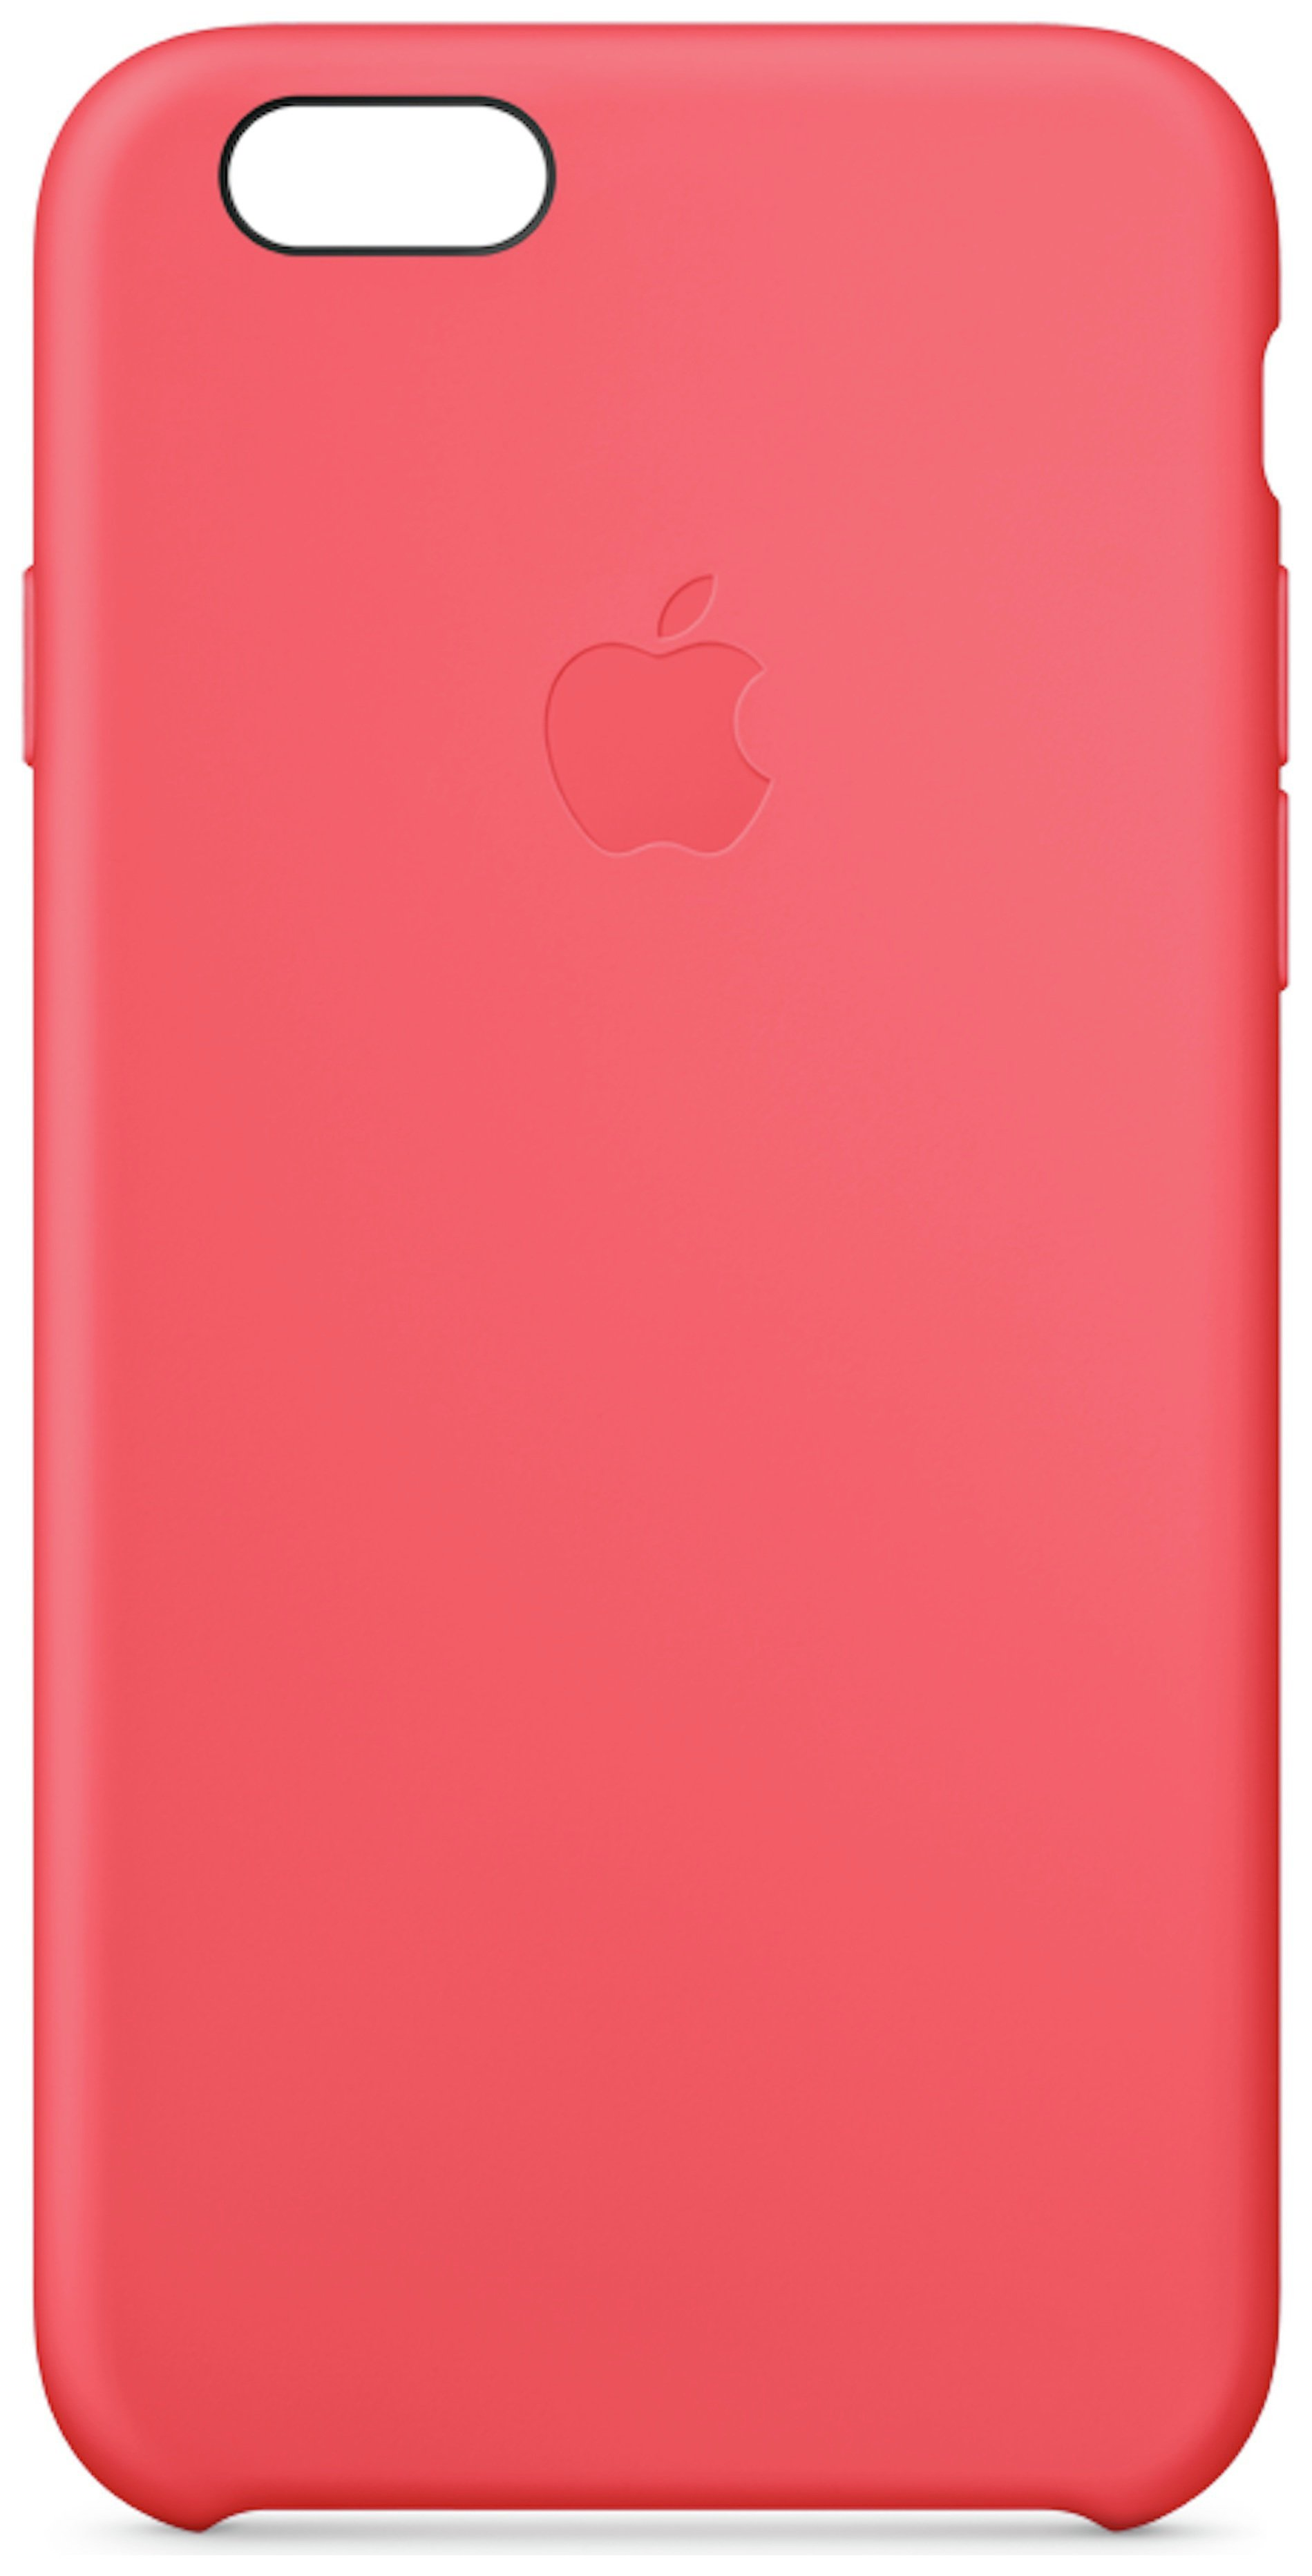 iphone-6-plus-silicone-case-pink